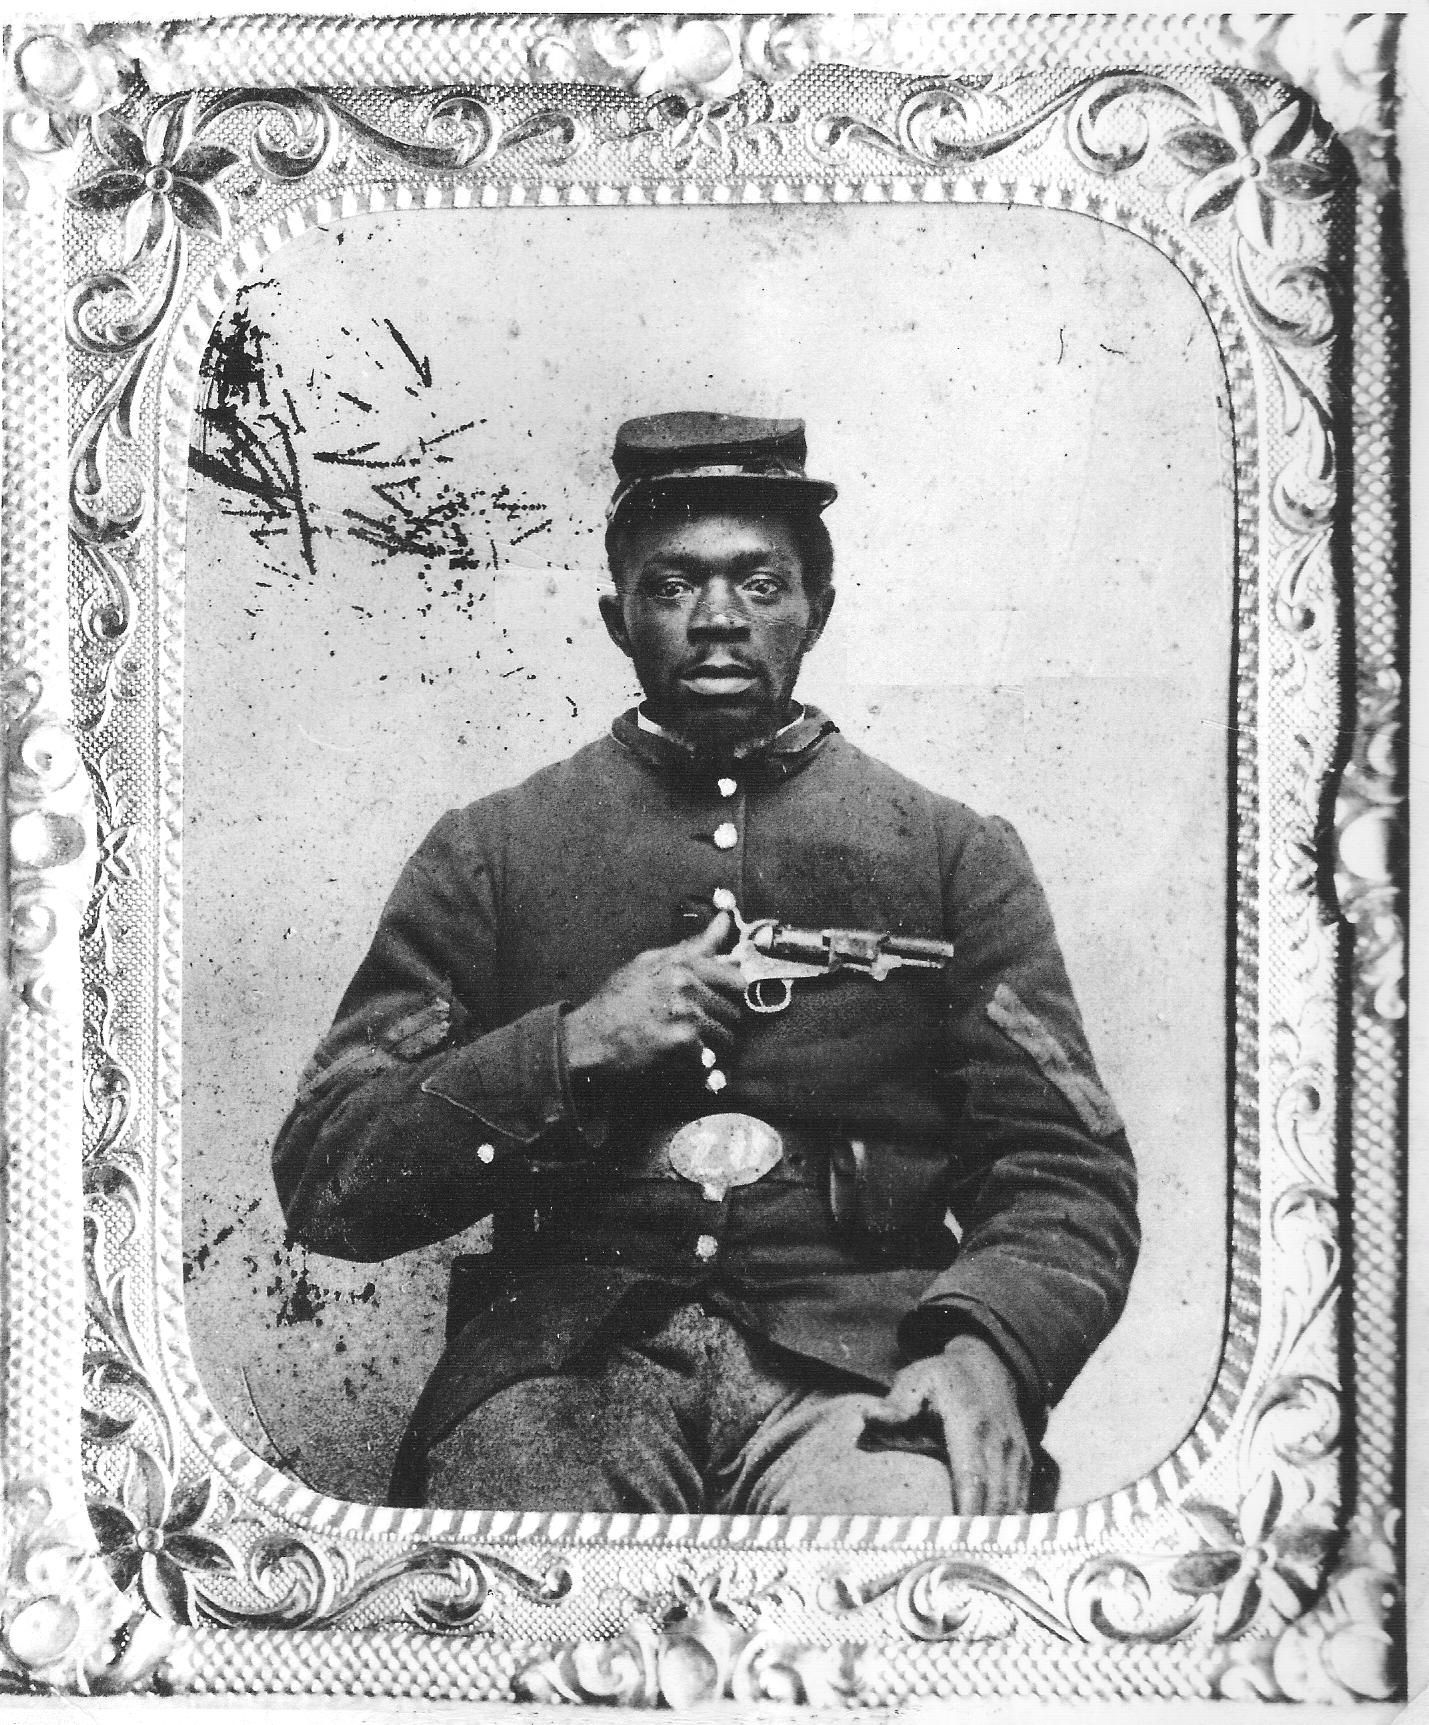 black soldiers in the civil war The american civil war (1861-1865) was a war fought within the united states after the election of abraham lincoln for president, eleven states withdrew from the united states to form the.